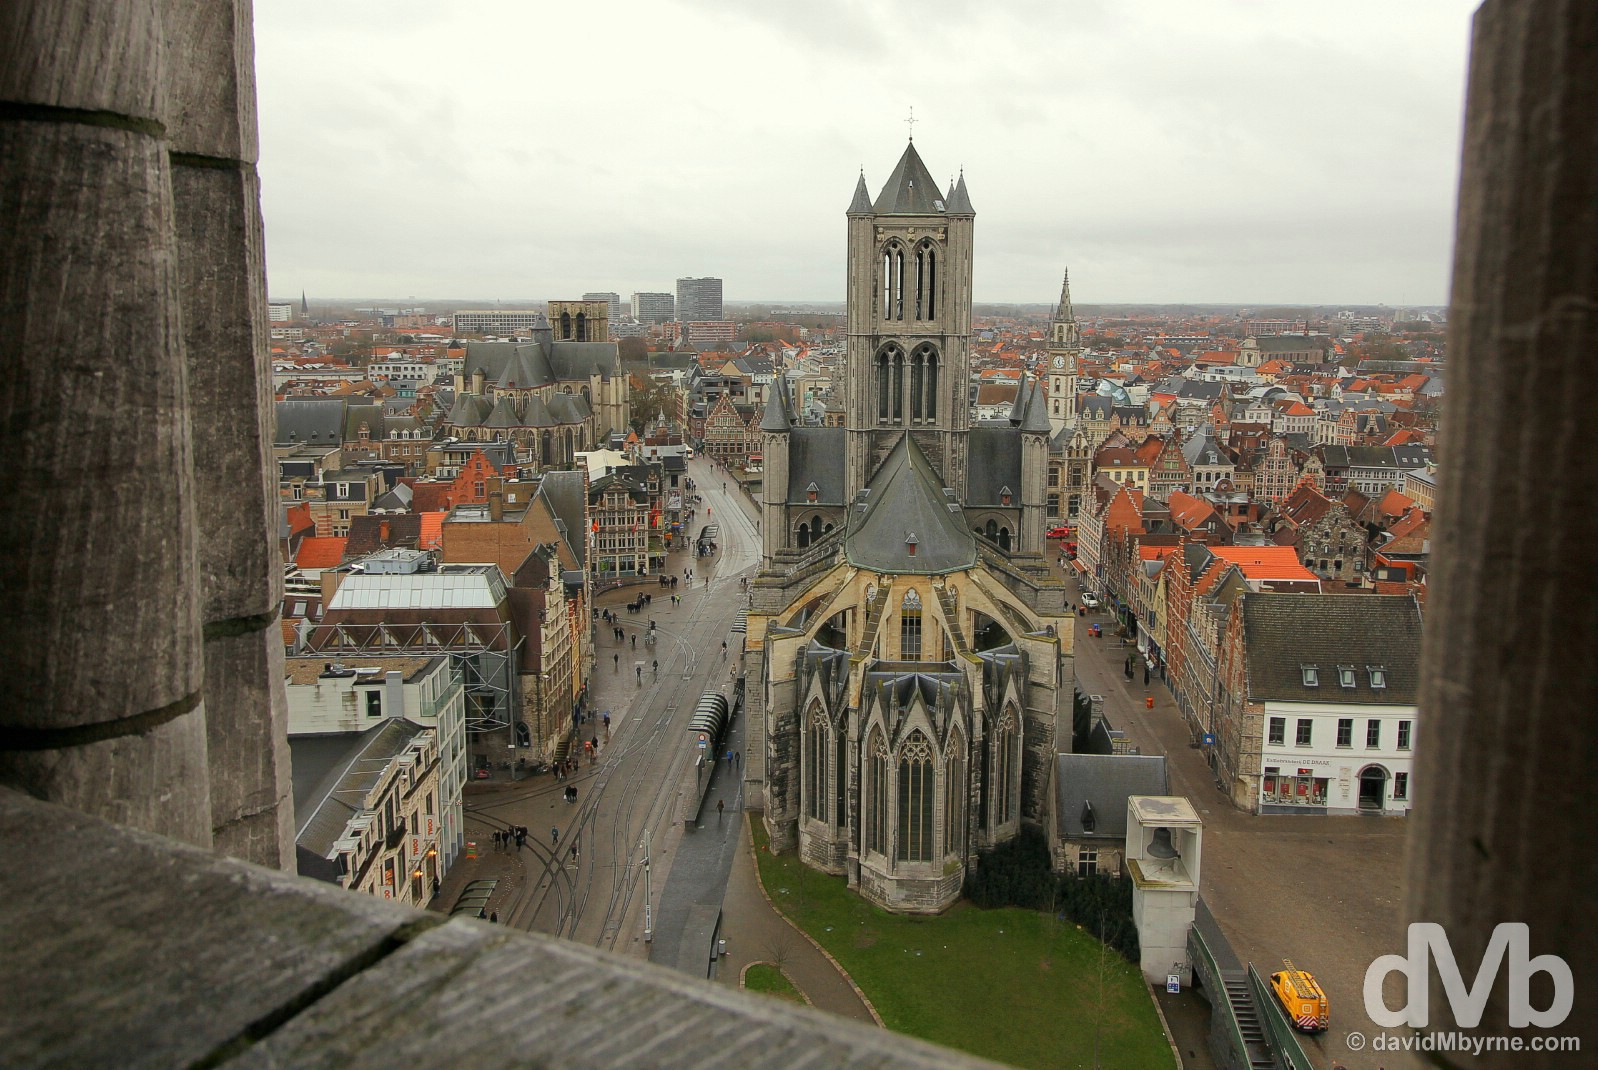 Sint Niklaaskerk/St. Nicholas' Church as seen from the windswept 91-metre-tall, UNESCO-listed Belfry in Ghent, western Flanders, Belgium. January 15, 2016.